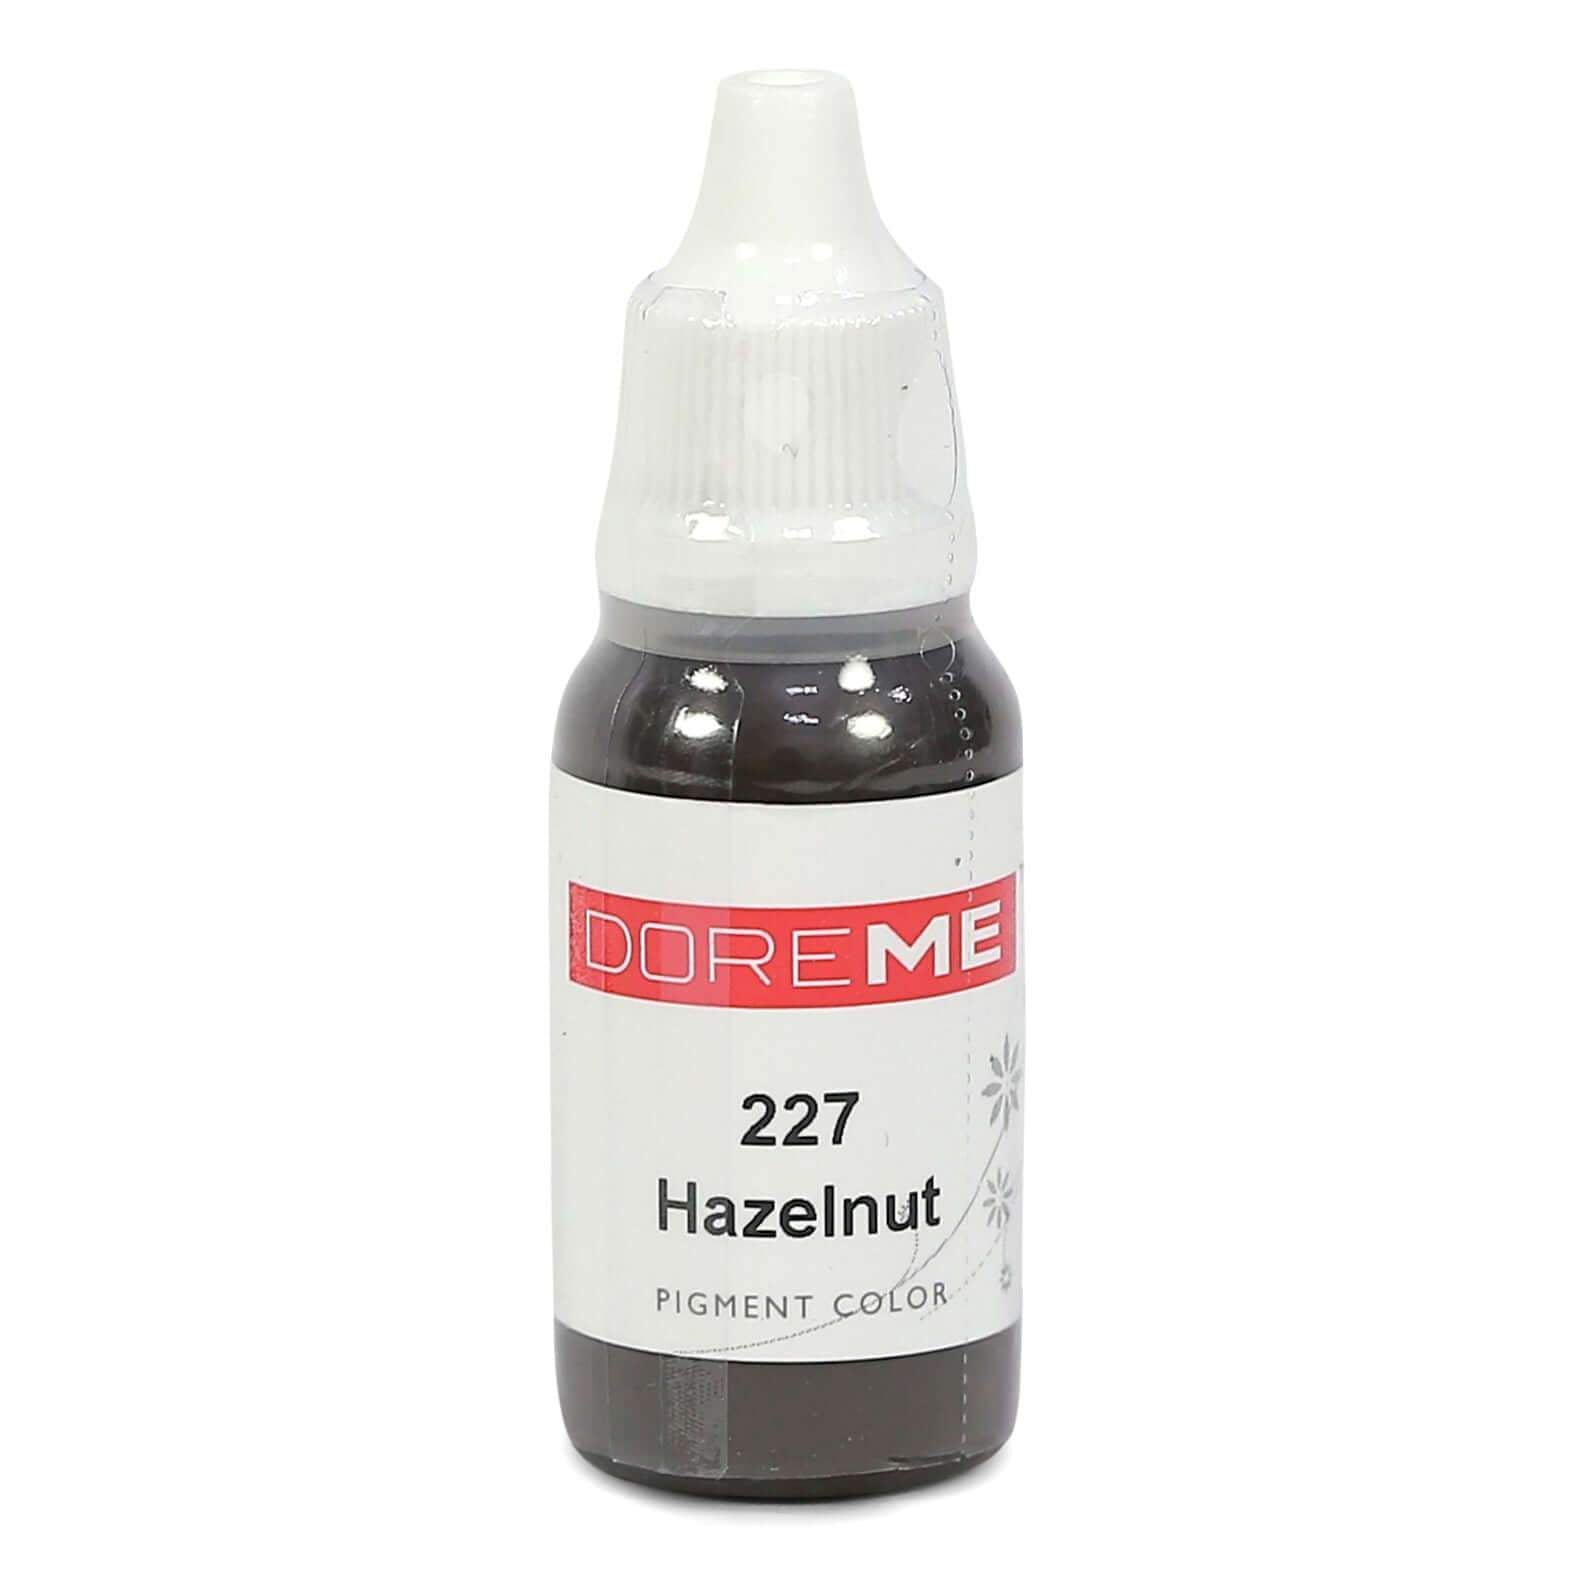 Permanent Makeup pigments Doreme Micropigmentation Eyebrow, Eyeliner, Lip Colours 227 Hazelnut (c) - Beautiful Ink UK trade and wholesale supplier